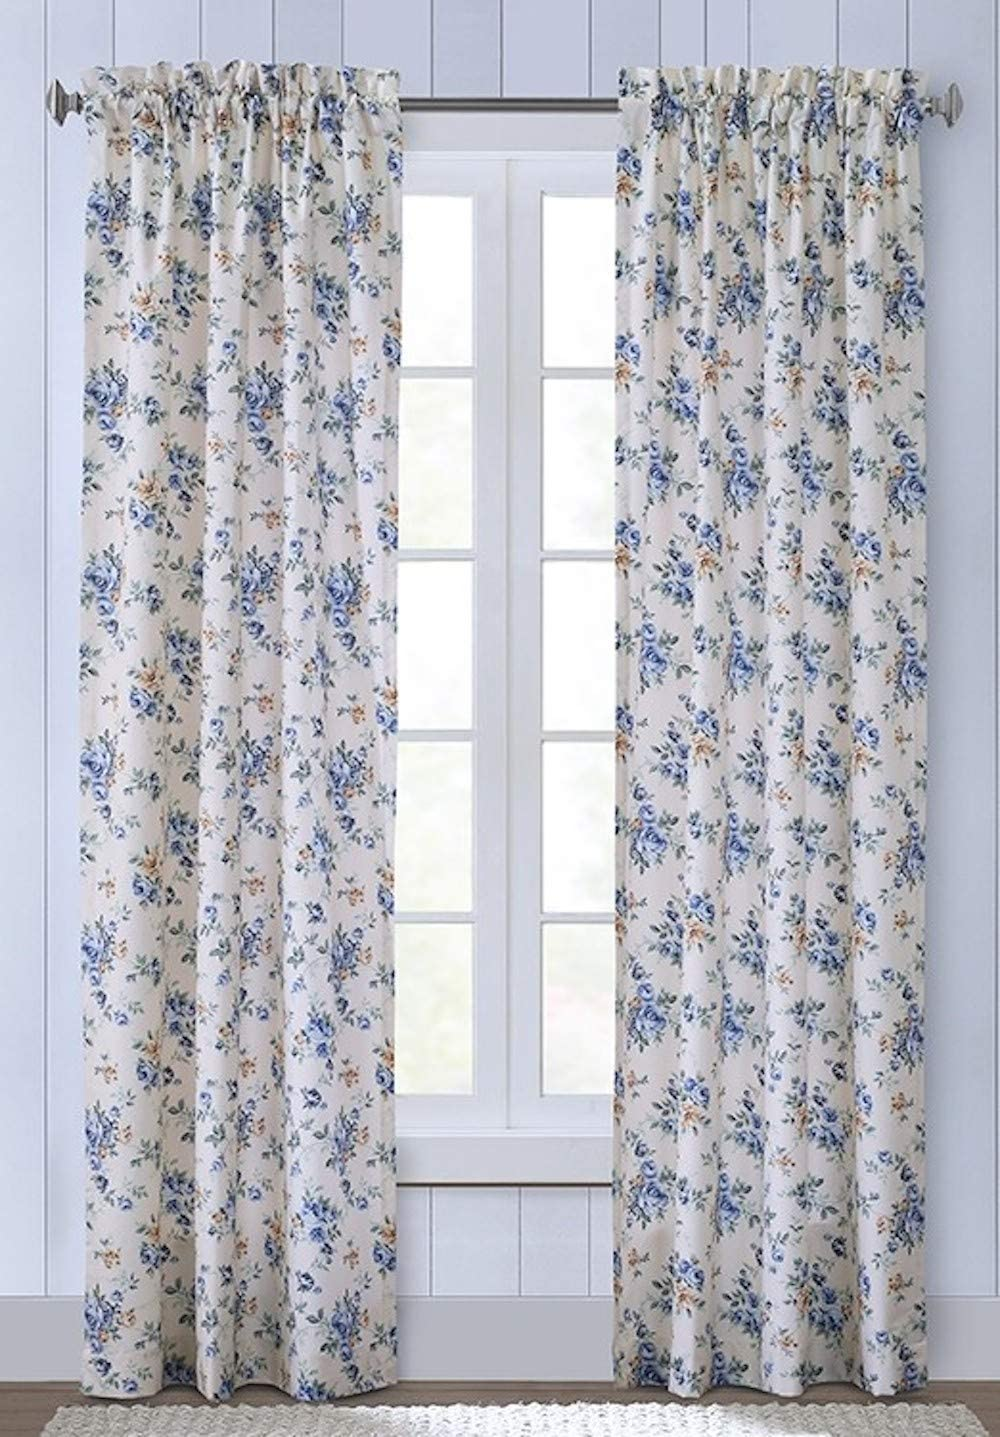 Thermalogic Cabbage Rose Floral Rod Pocket Curtain by Commonwealth Wedgewood, 80W x 84L Pair